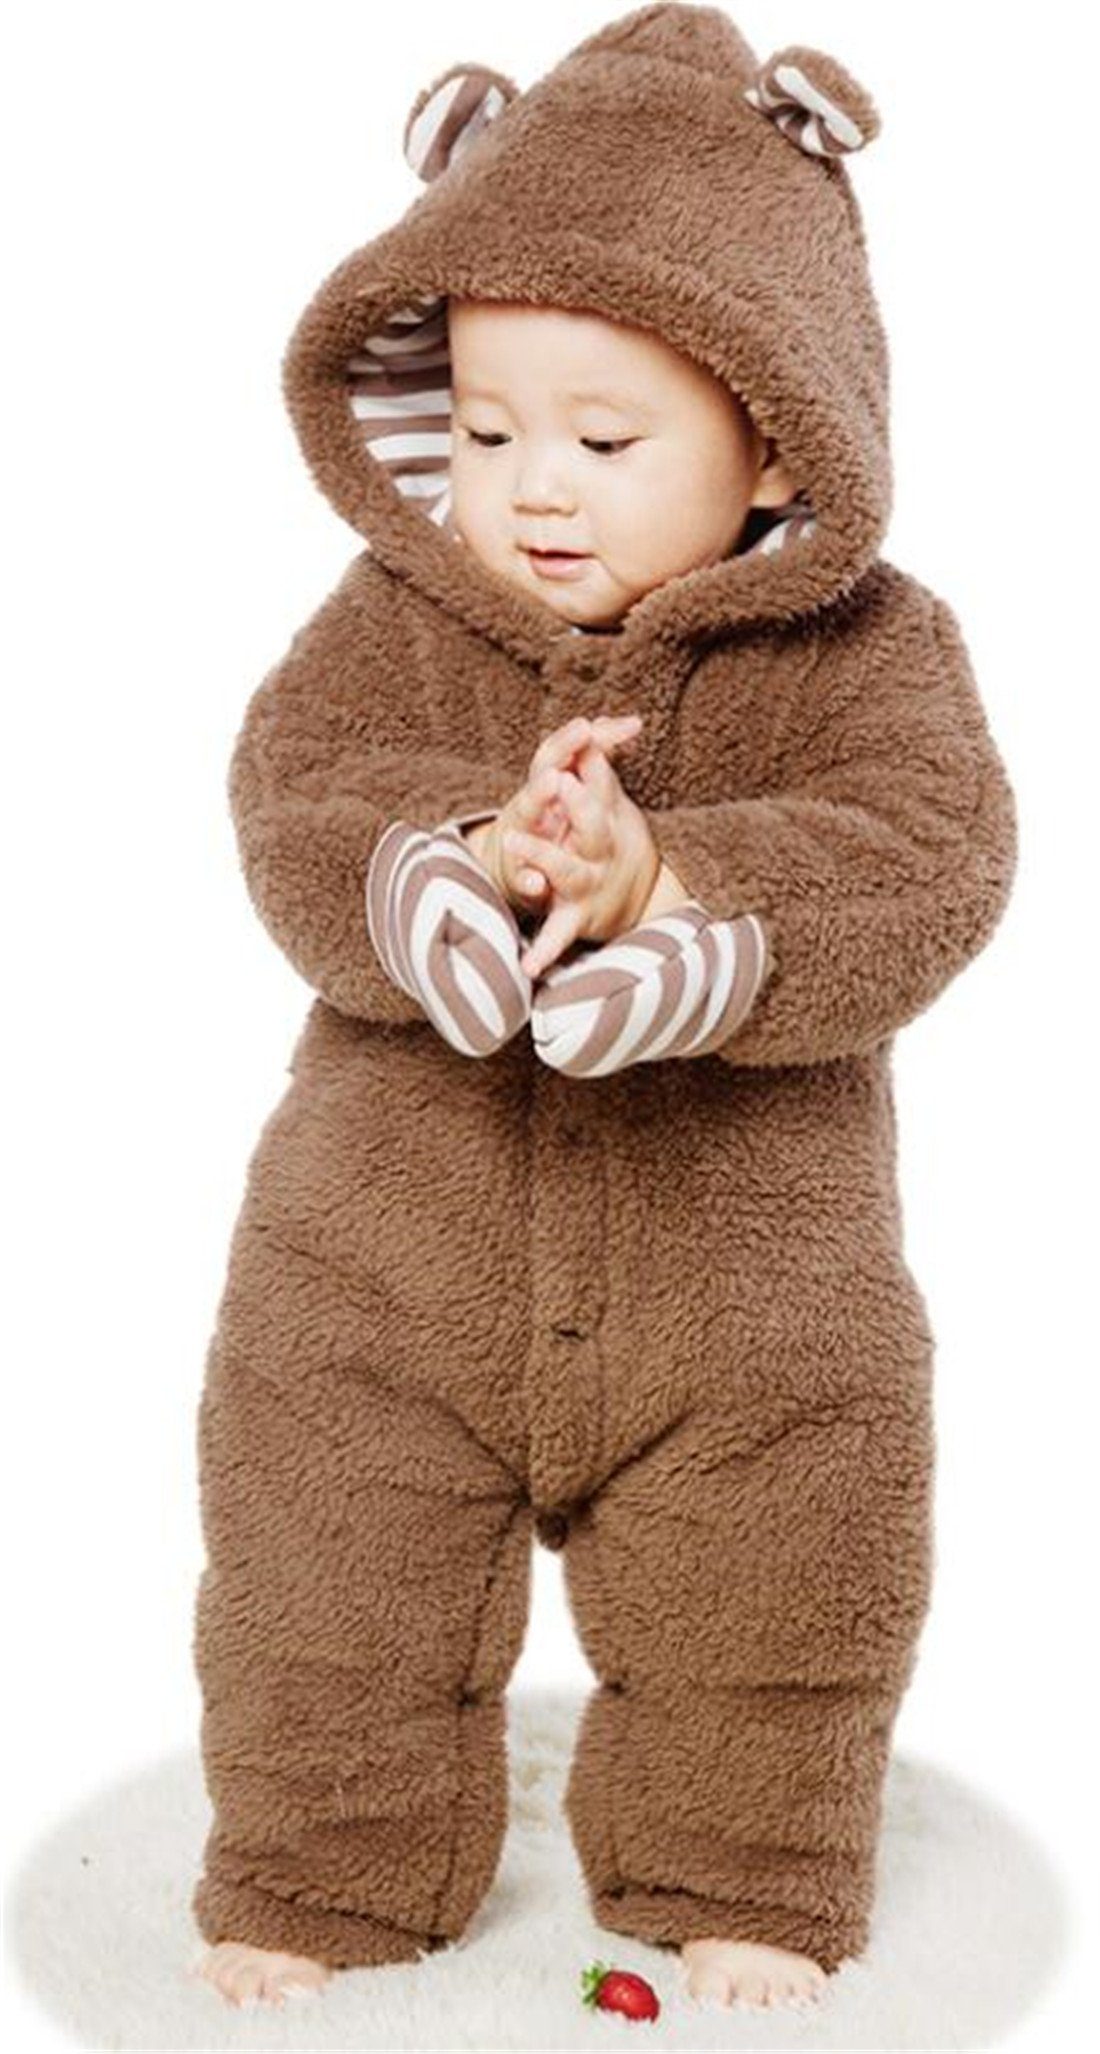 LOTUCY Infant Boys Girls Winter Snowsuit Bear Pattern Jumpsuit Hooded Outerwear Coat Size 12-18 Months/Tag90 (Brown)